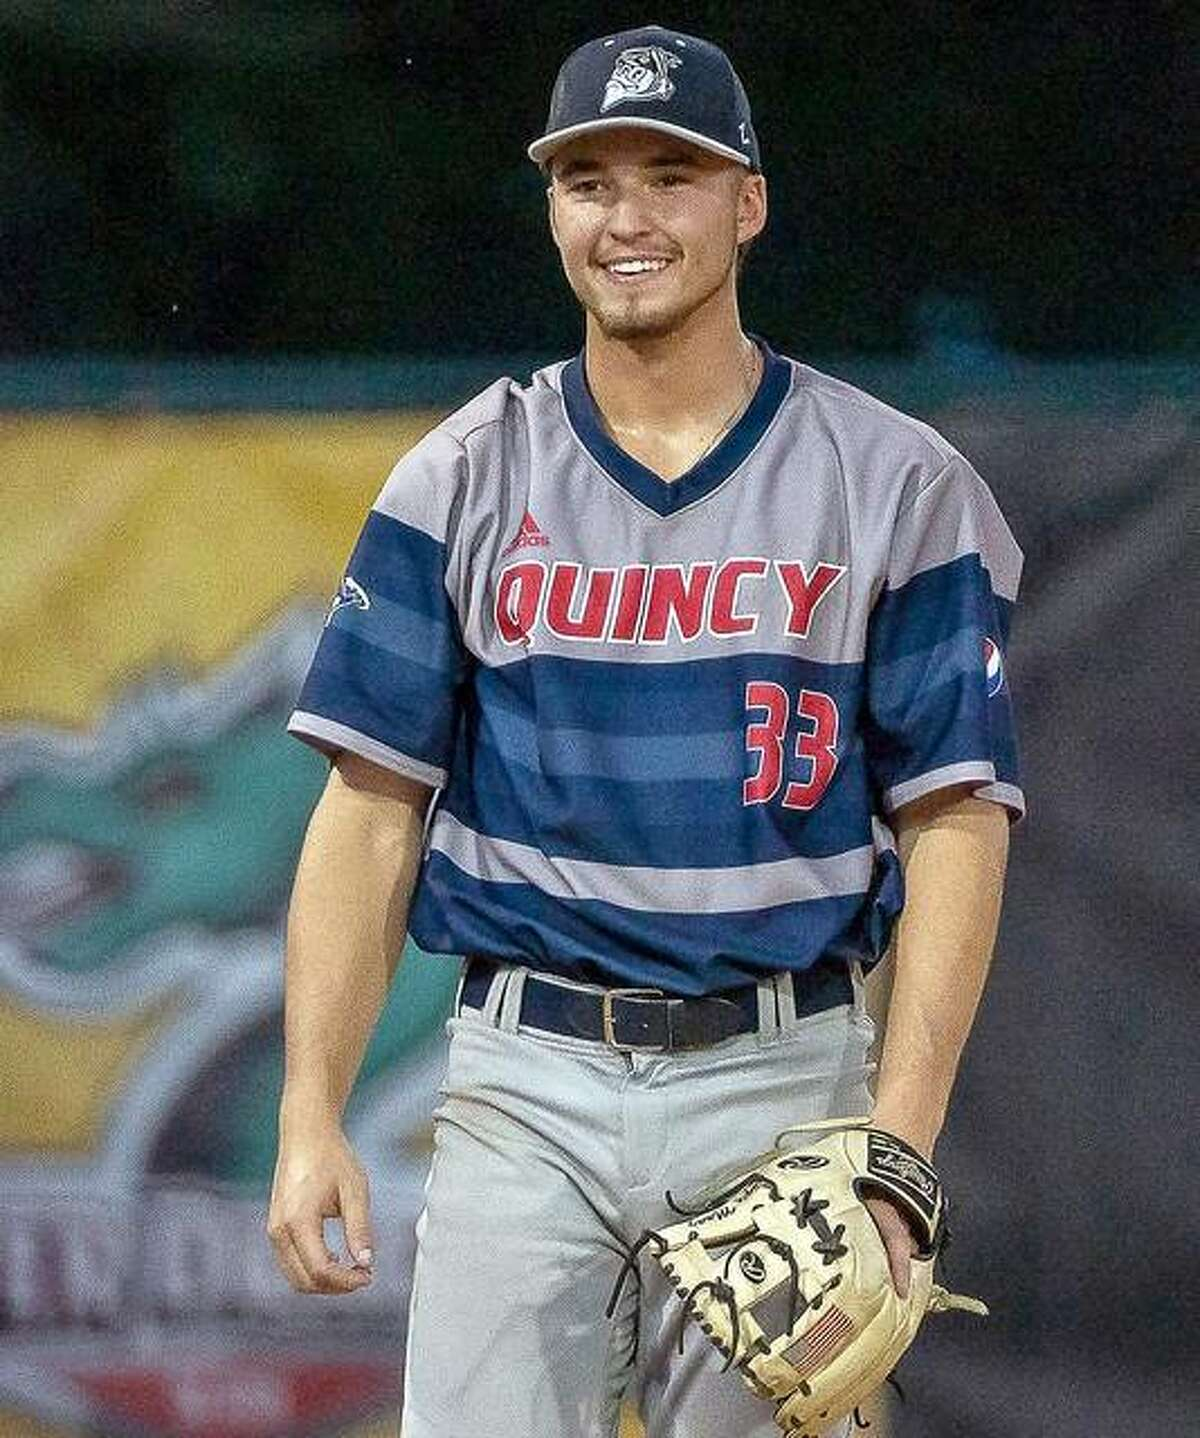 Jayce Maag of the Quincy Gems is a graduate of Marquette High and a former player for the Alton Post 126 American Legion baseball team and plays at Lindenwood University. He played a pair of games for the Gems last week in Alton against the River Dragons.